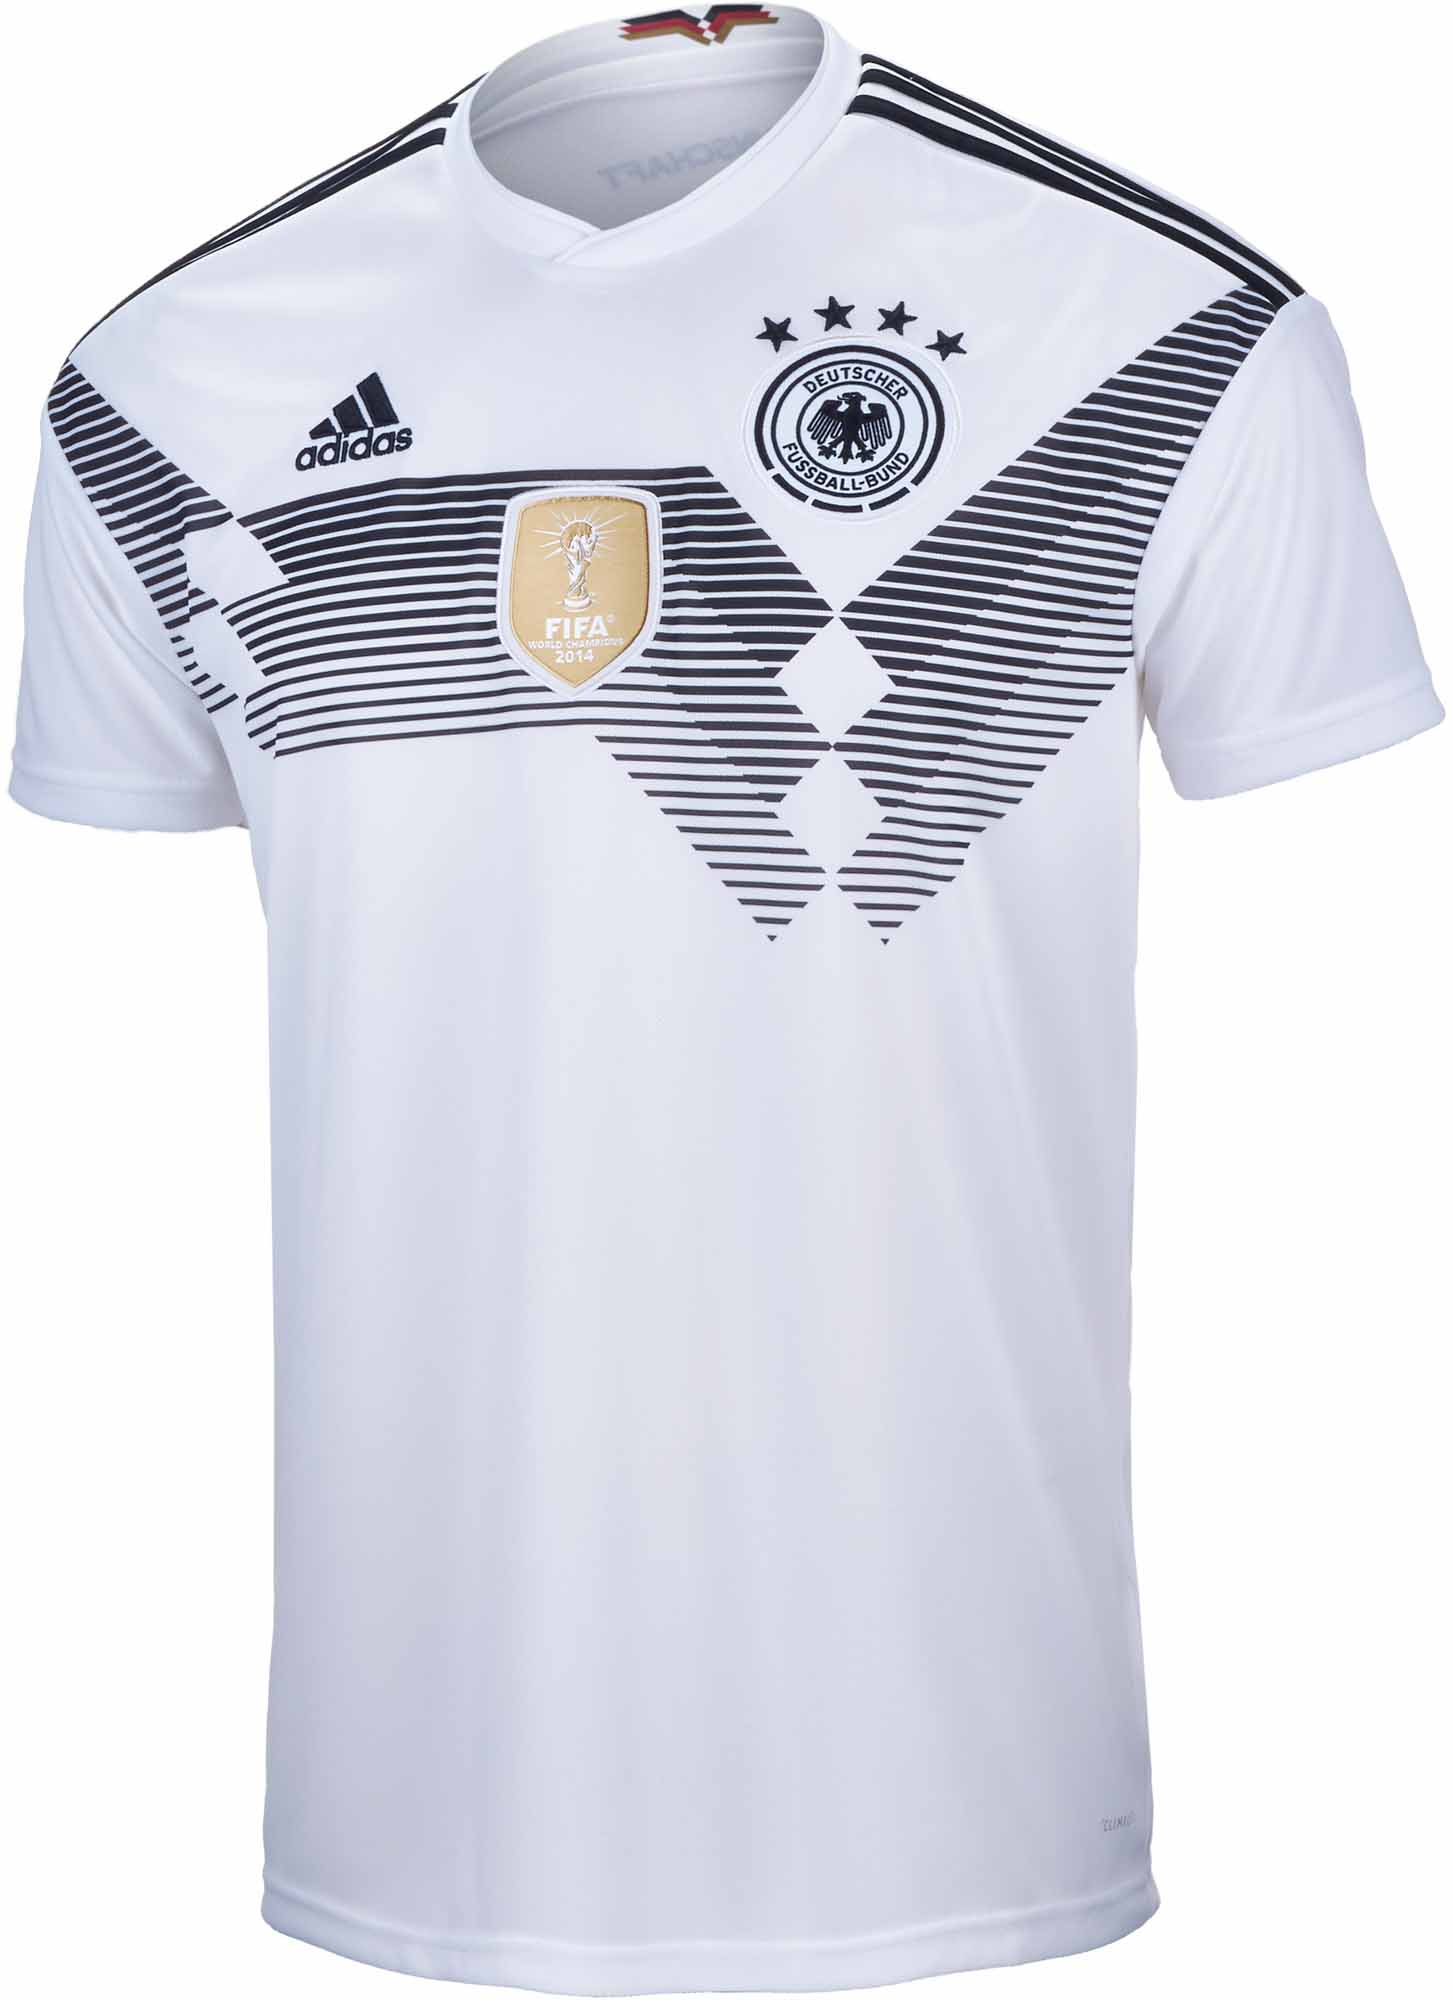 23b74bb6041 adidas Germany Home Jersey 2018-19 - SoccerPro.com